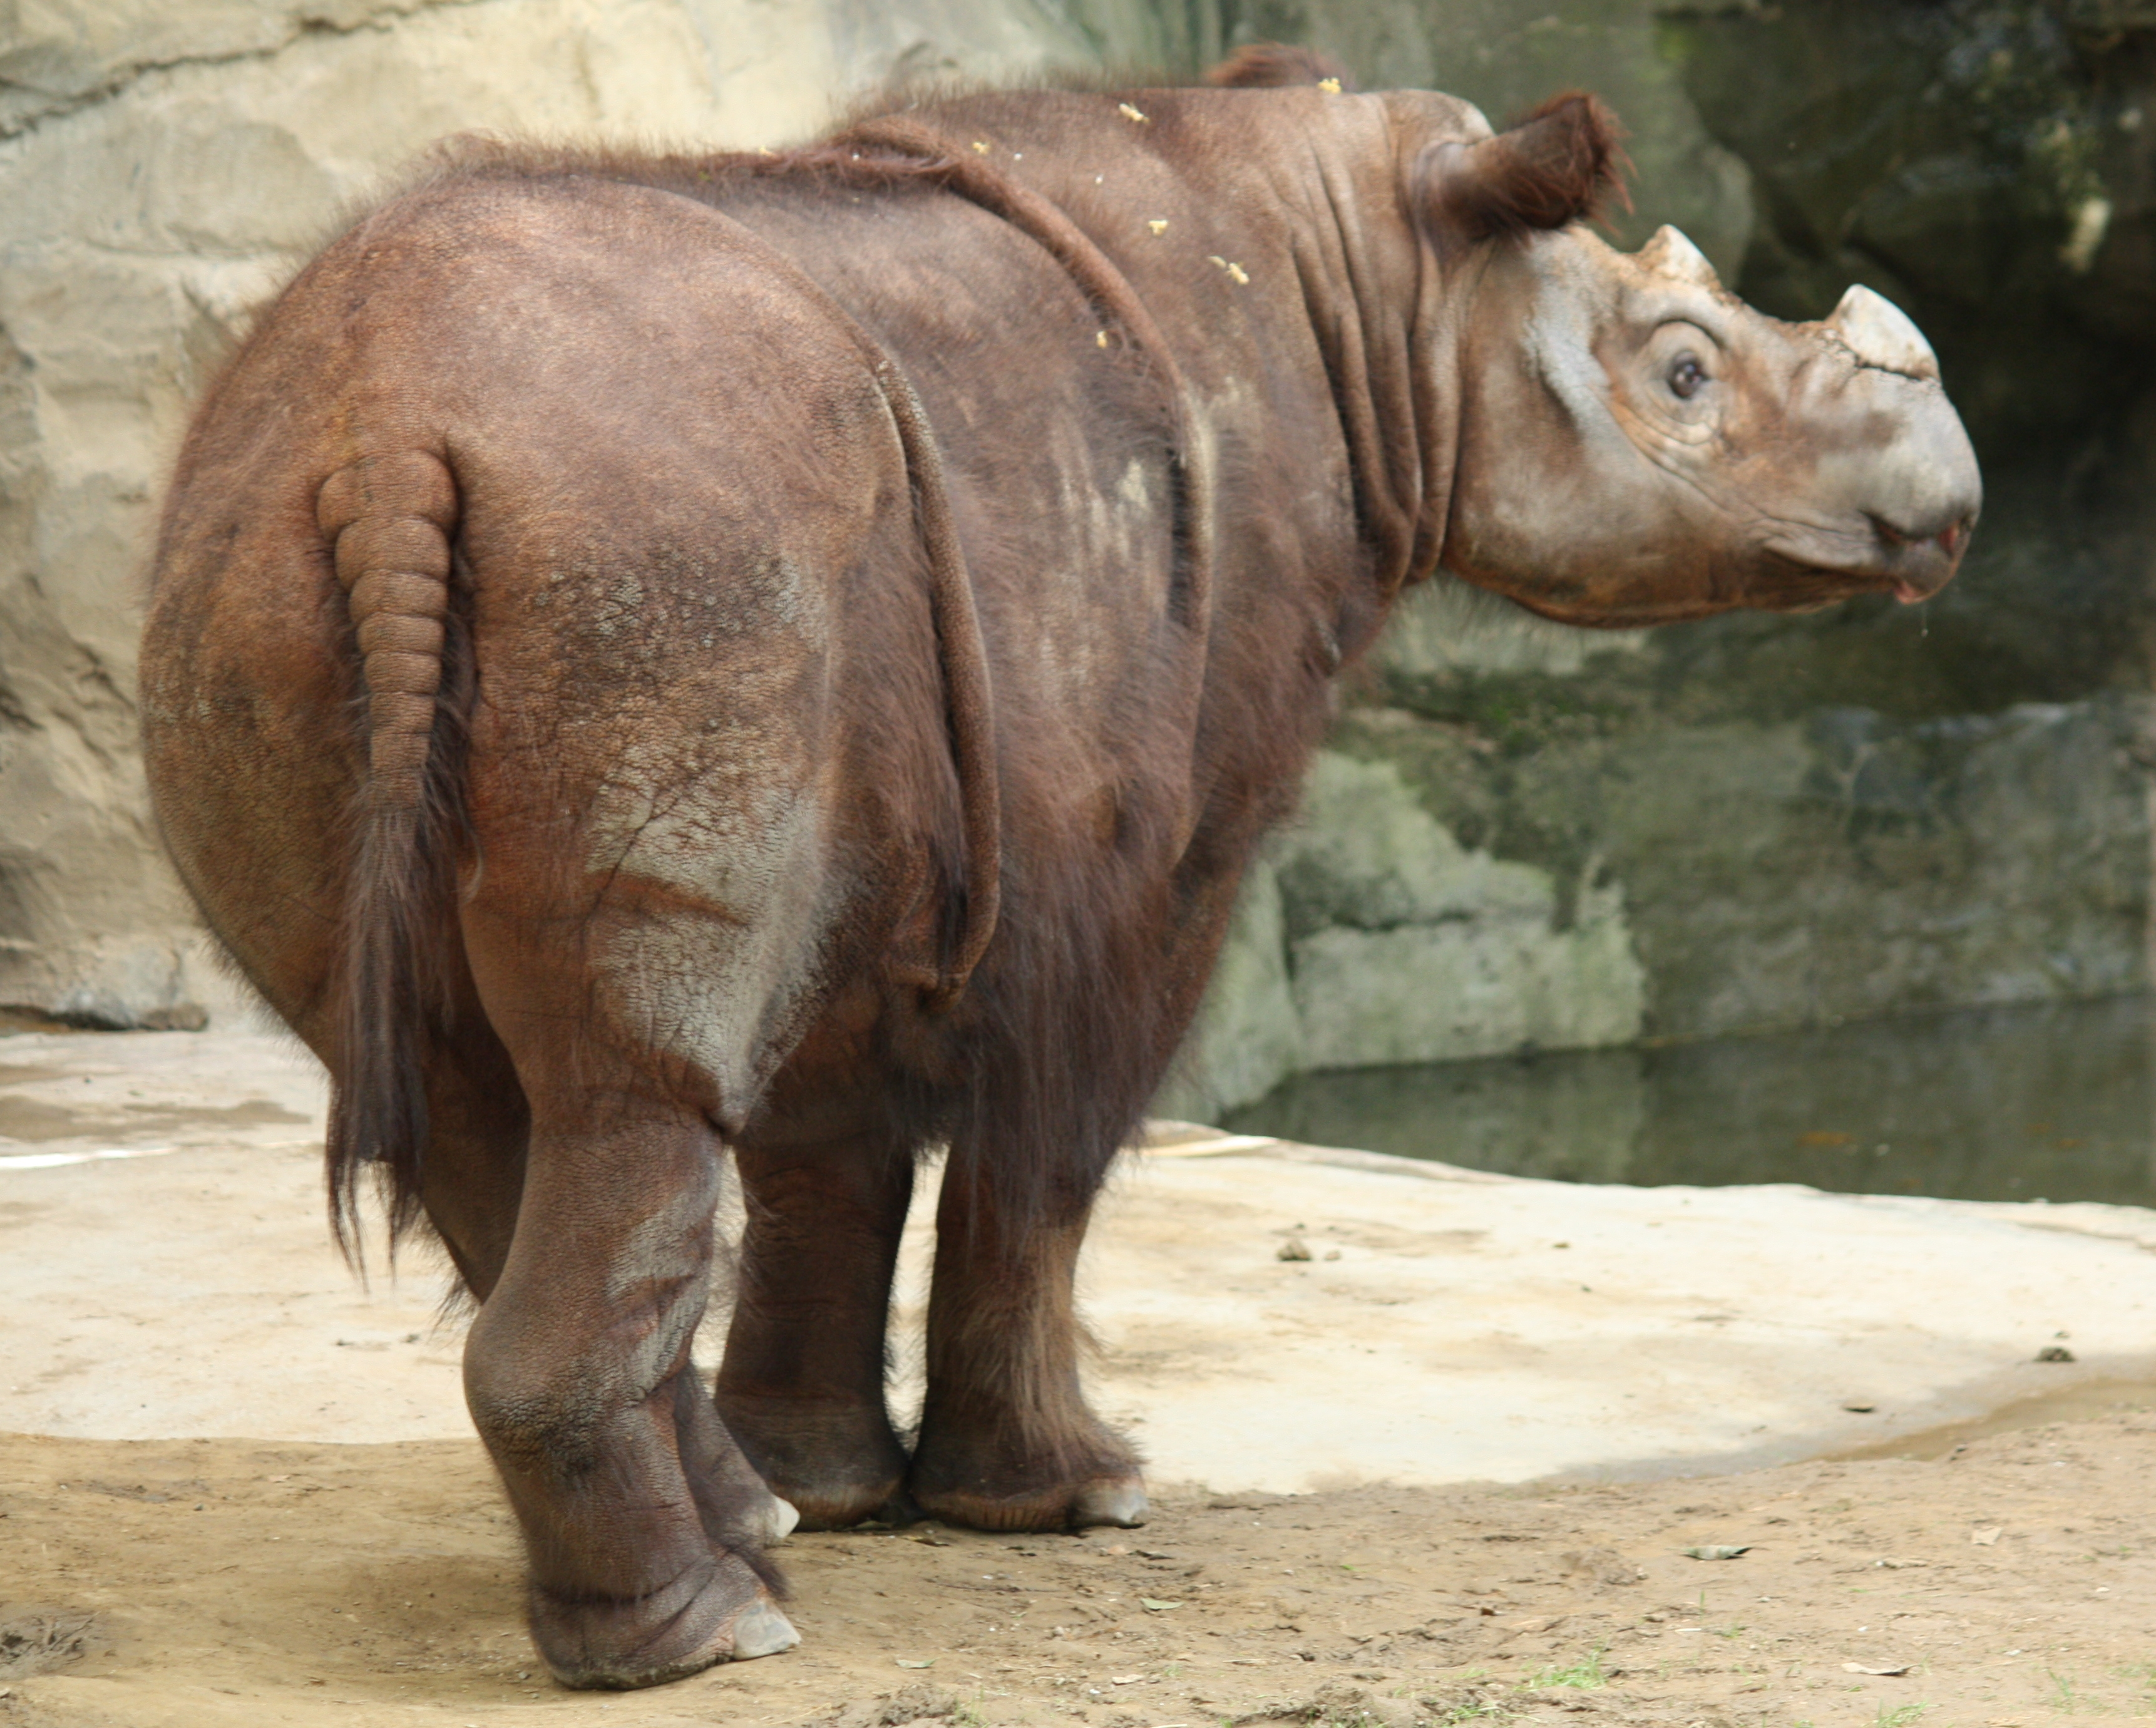 The Sumatran Rhino is a species close to extinction.